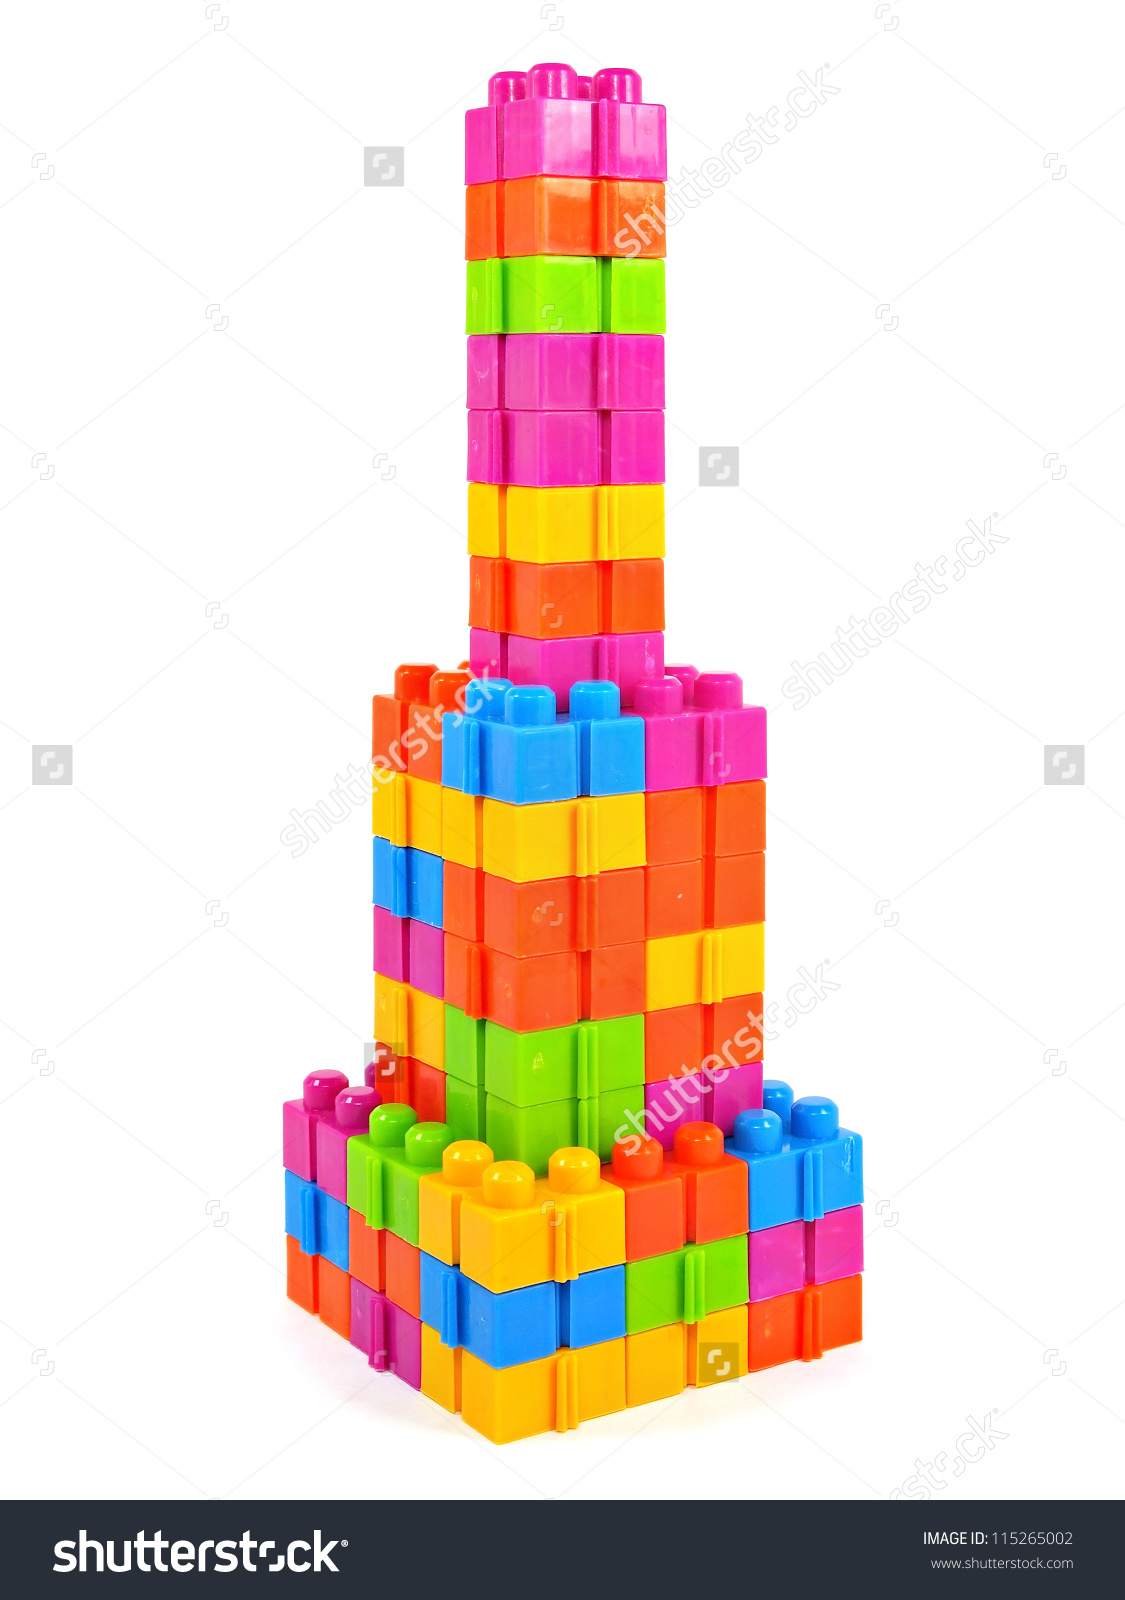 Plastic Building Blocks Tower On White Stock Photo 115265002.